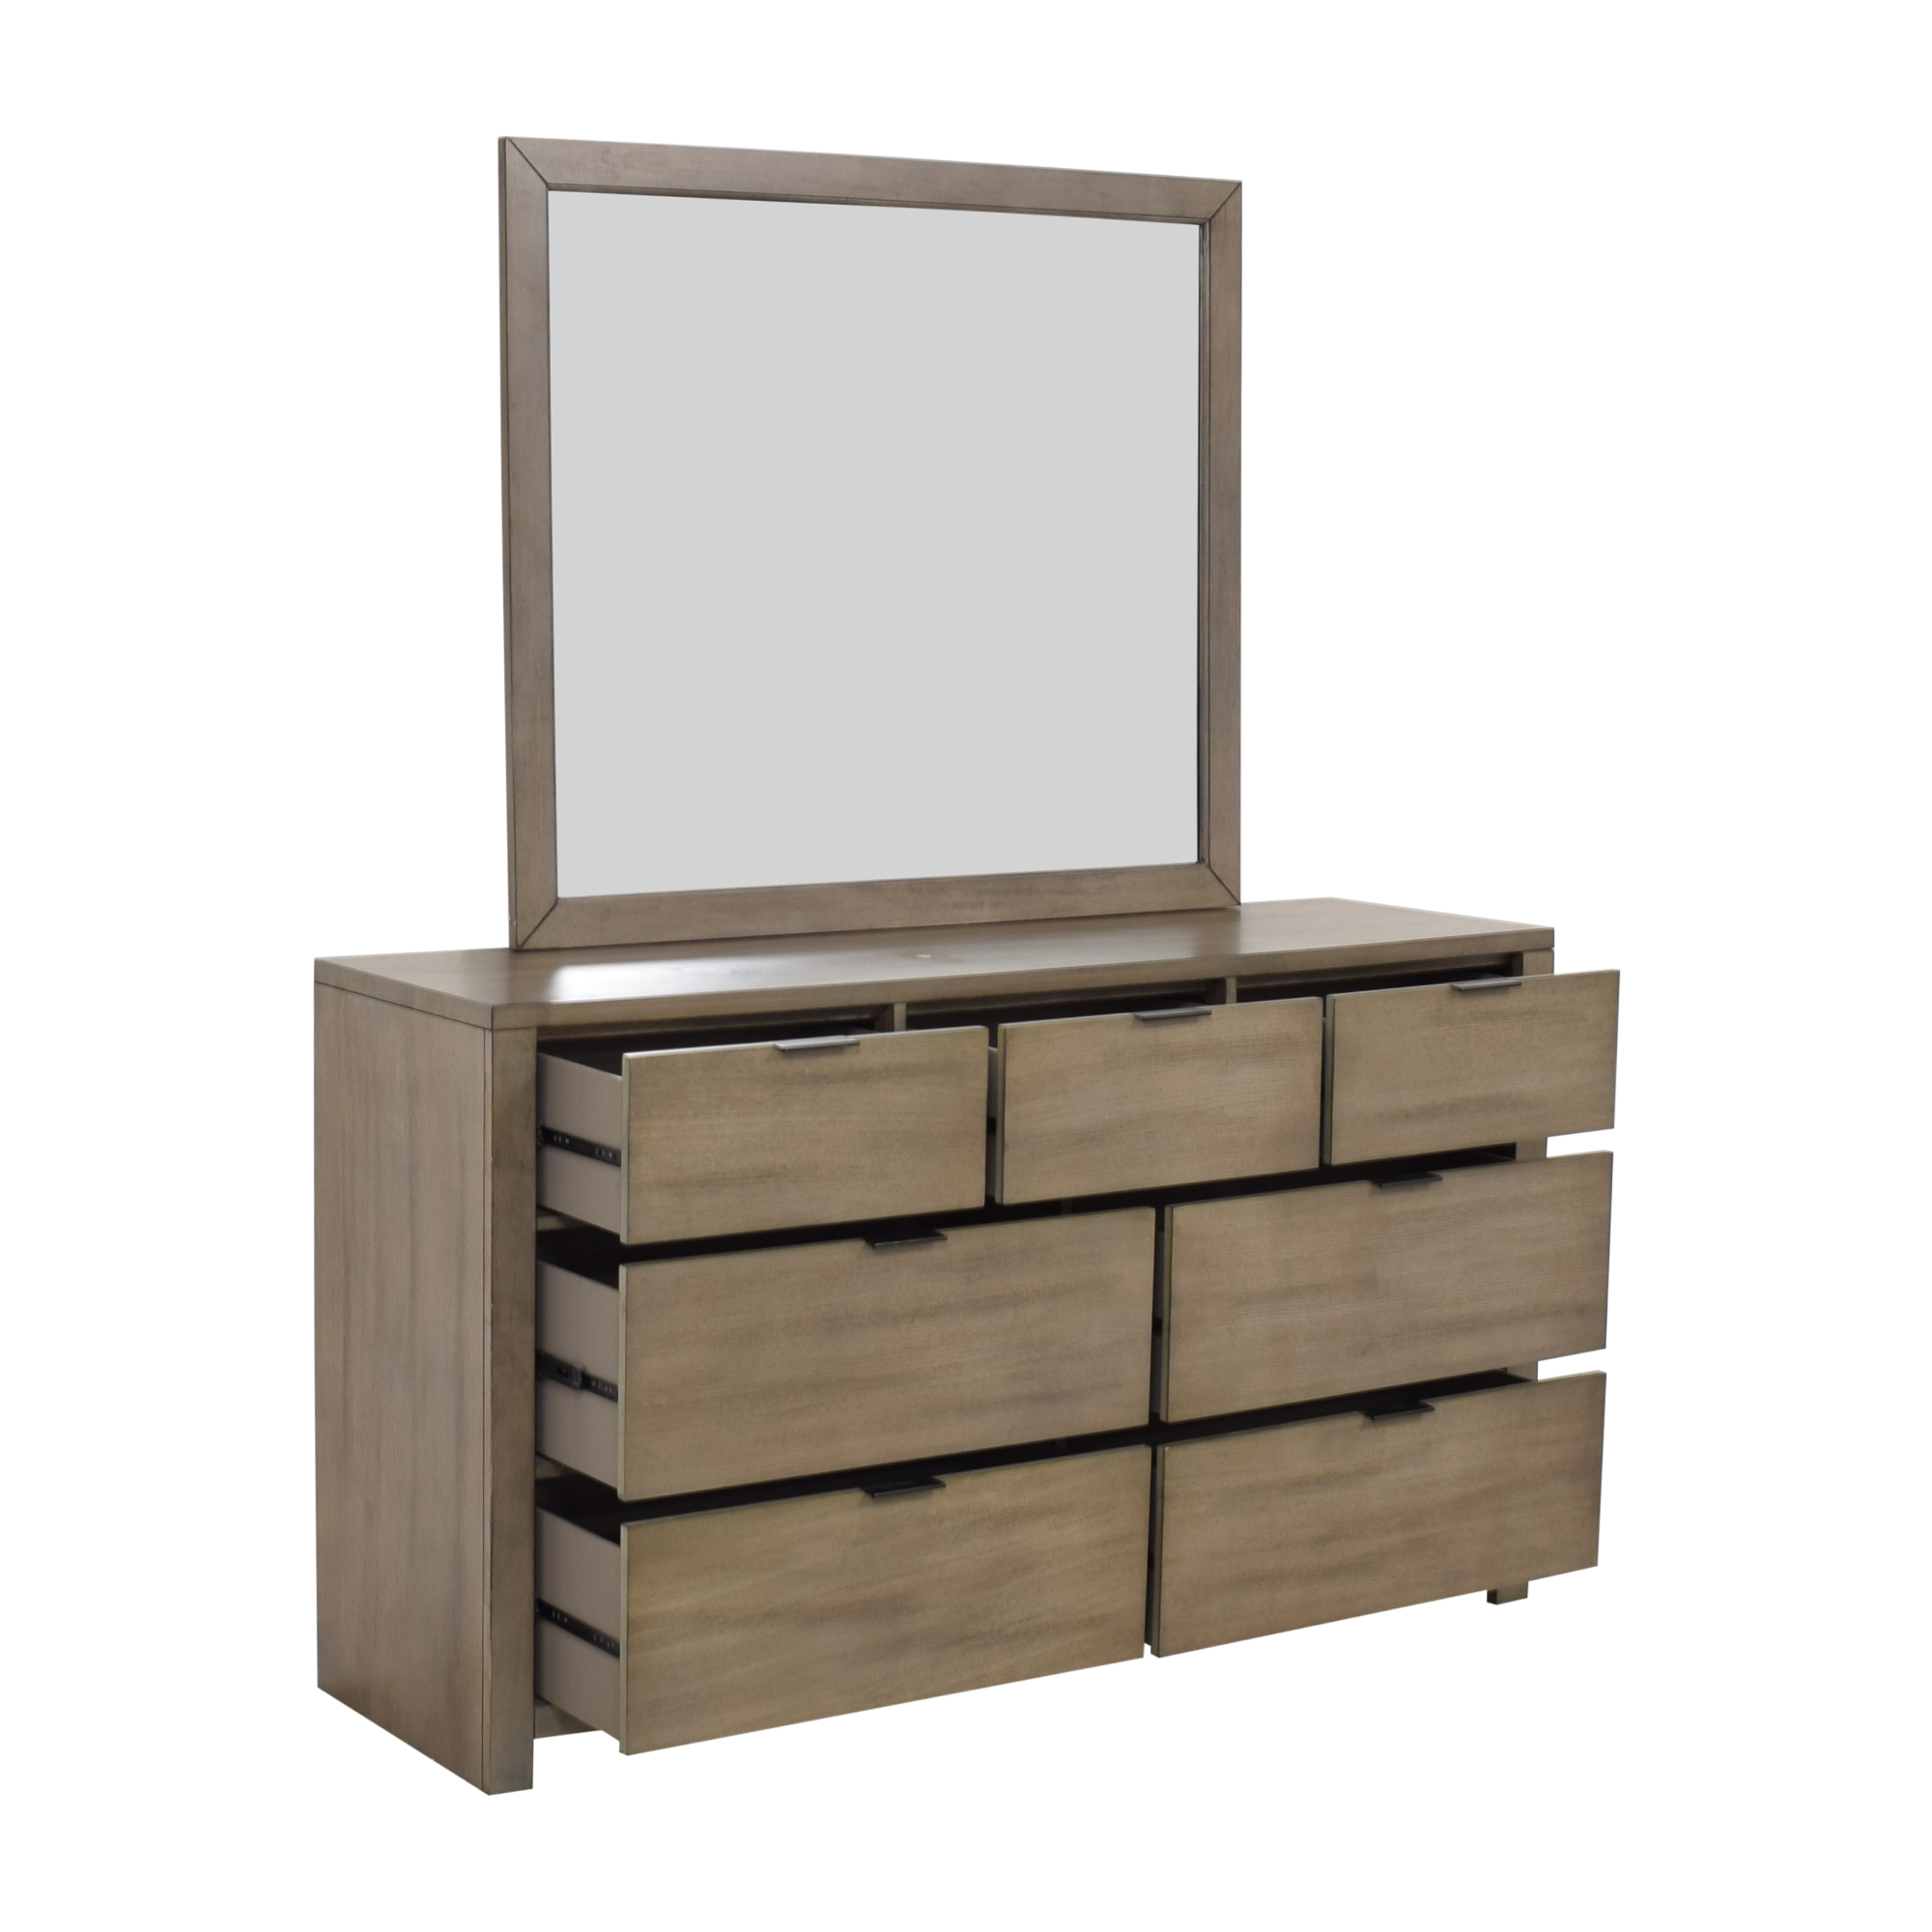 Home Meridian Home Meridian Tribeca Dresser and Landscape Mirror discount